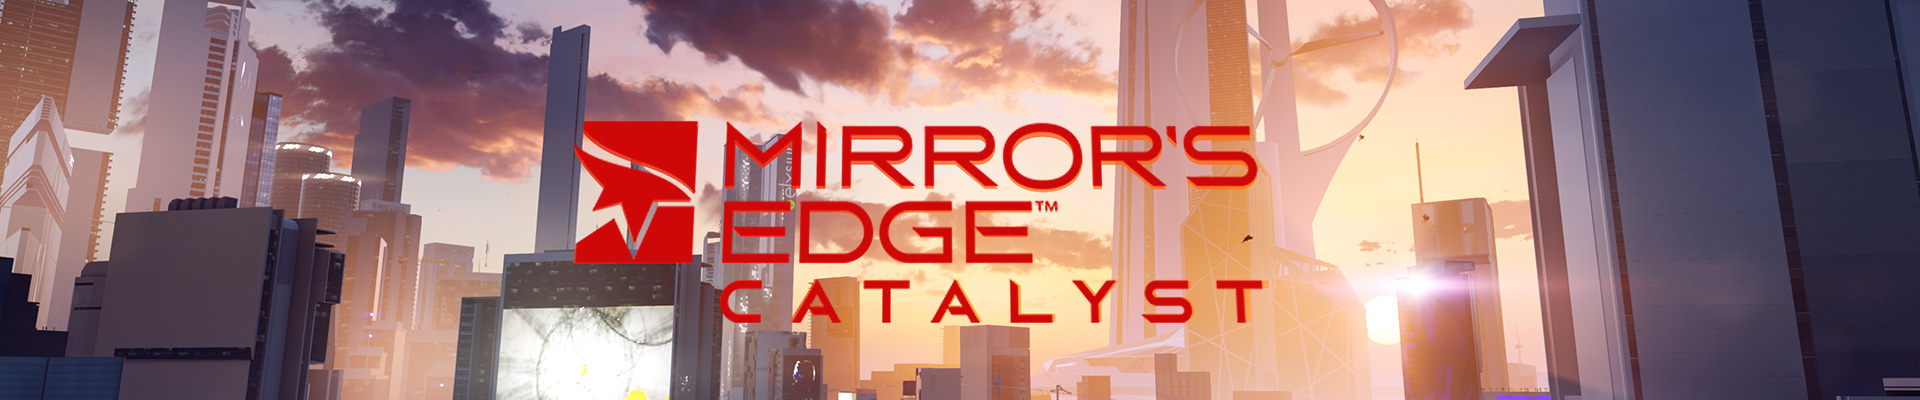 Thoughts on: Mirror's Edge Catalyst